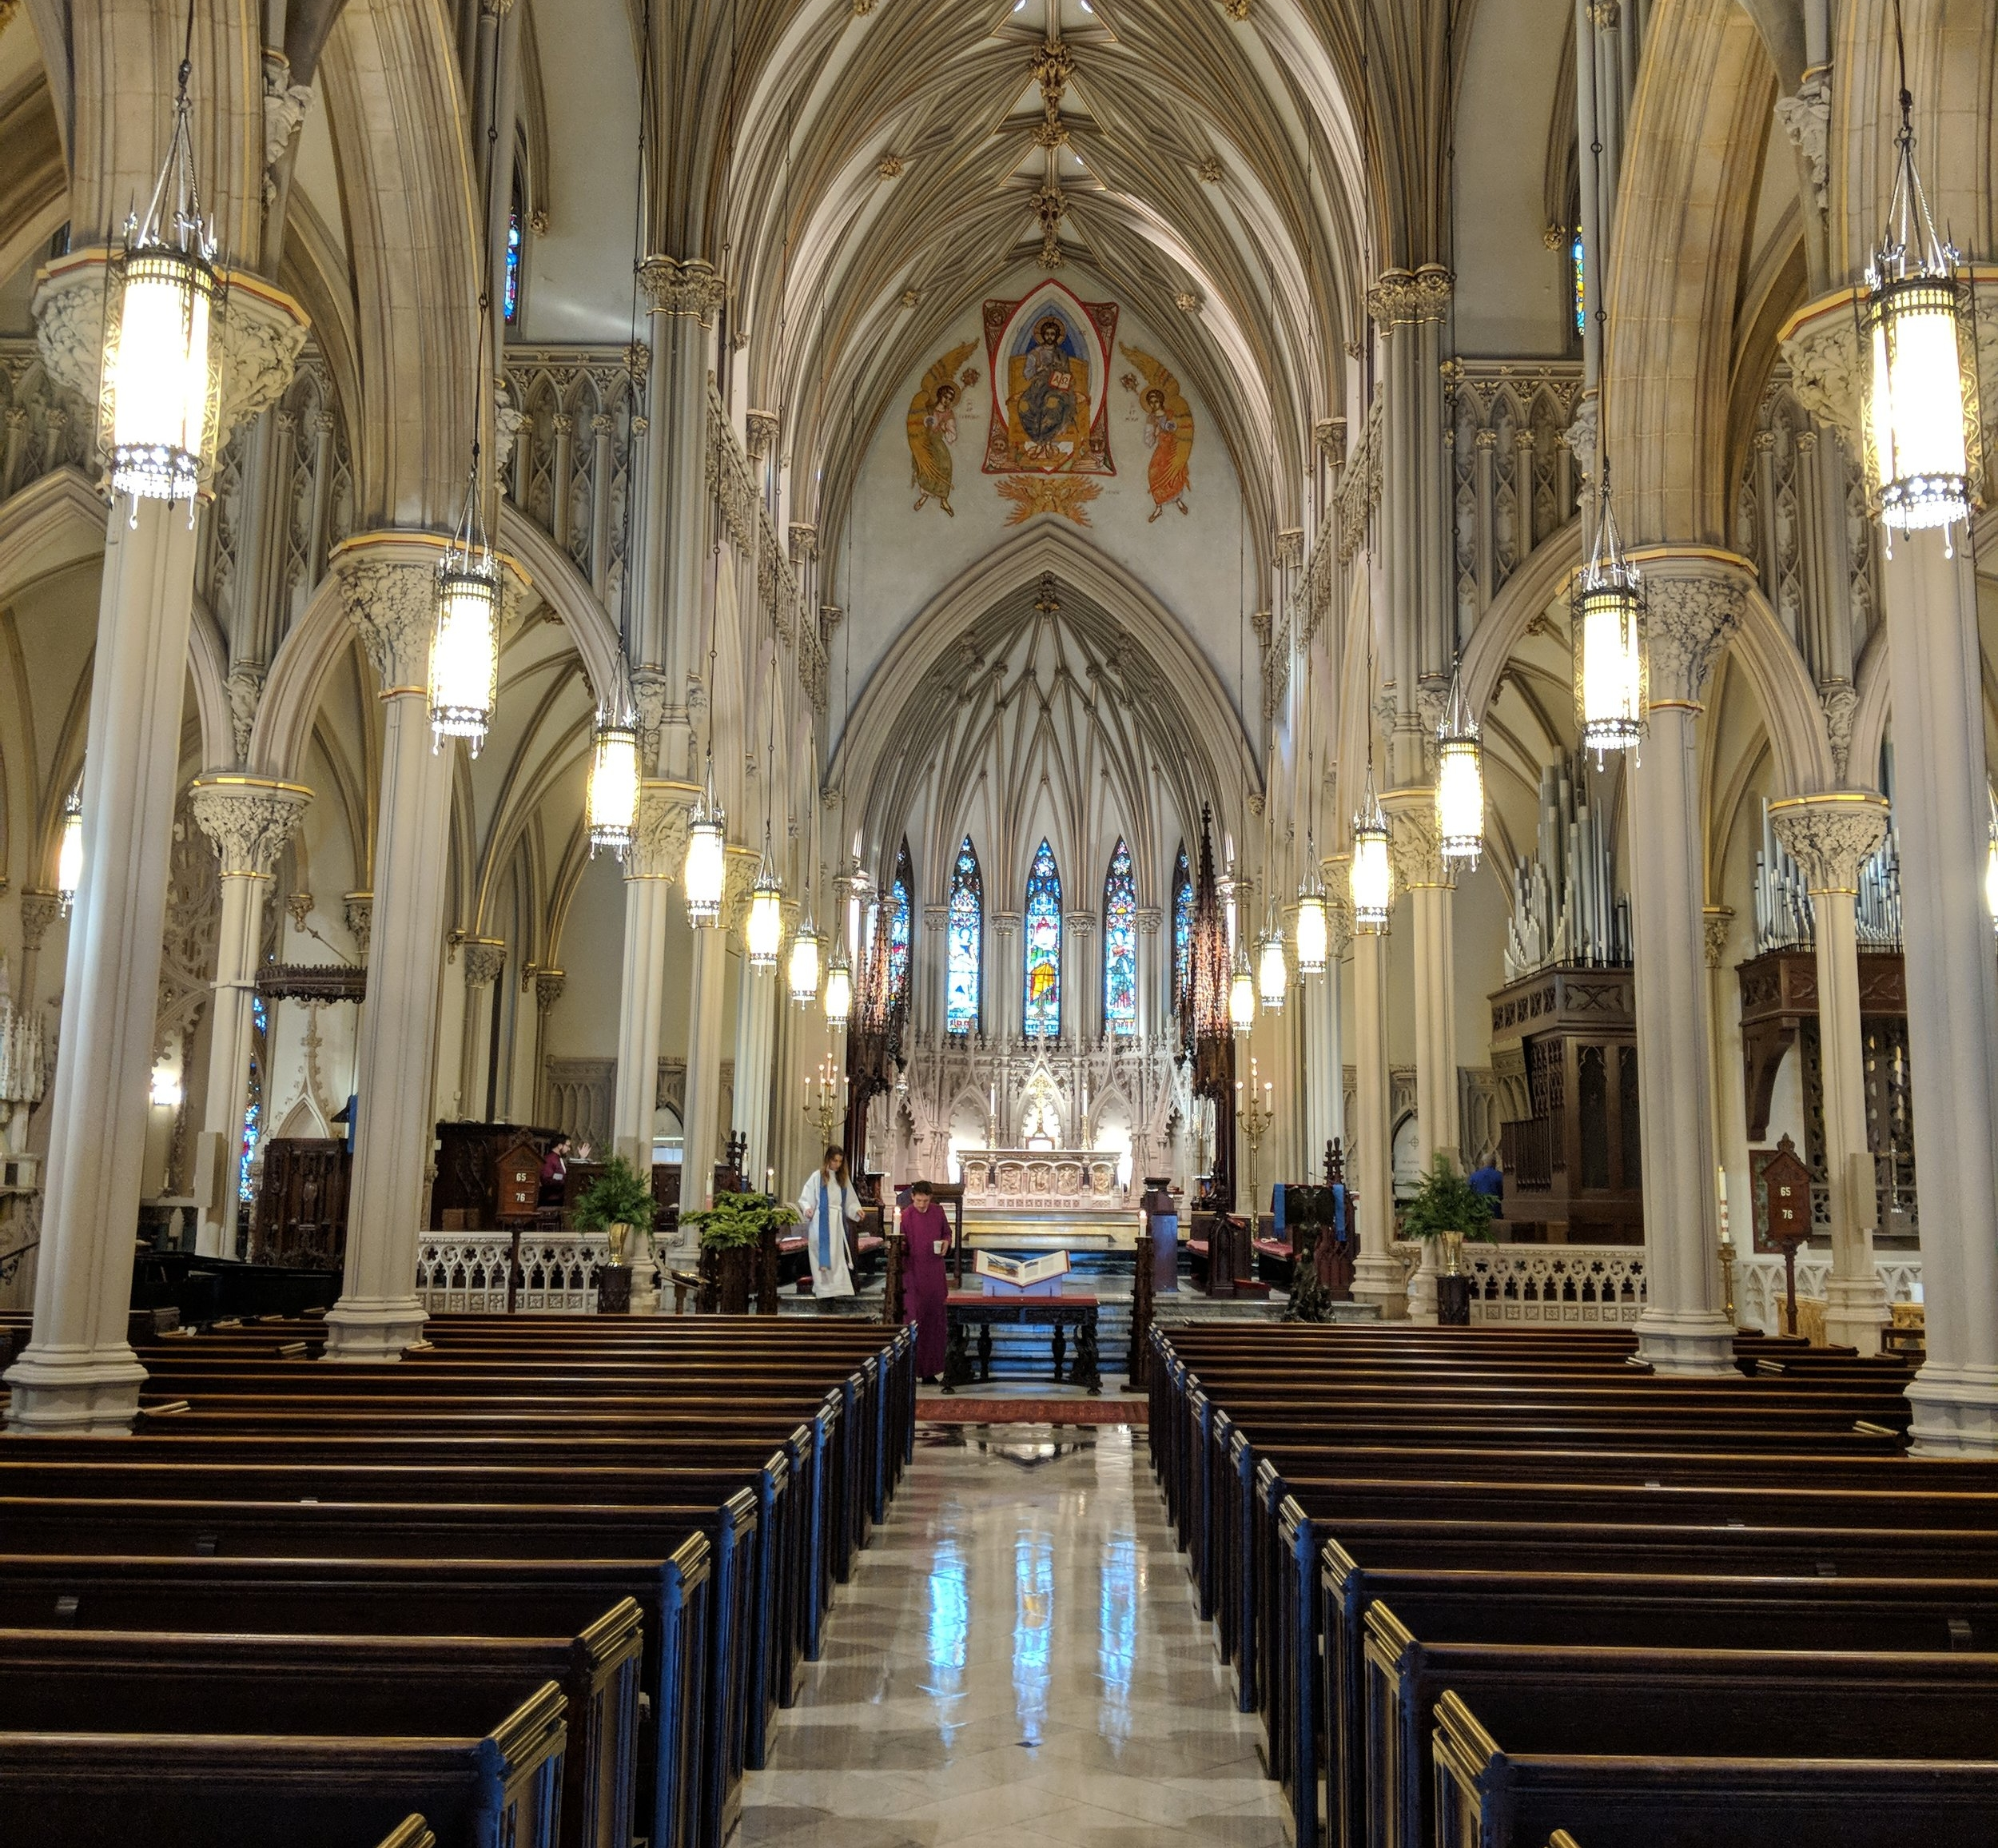 CAMM line array speakers, mounted on the front columns, provide coverage in the front of the Nave.